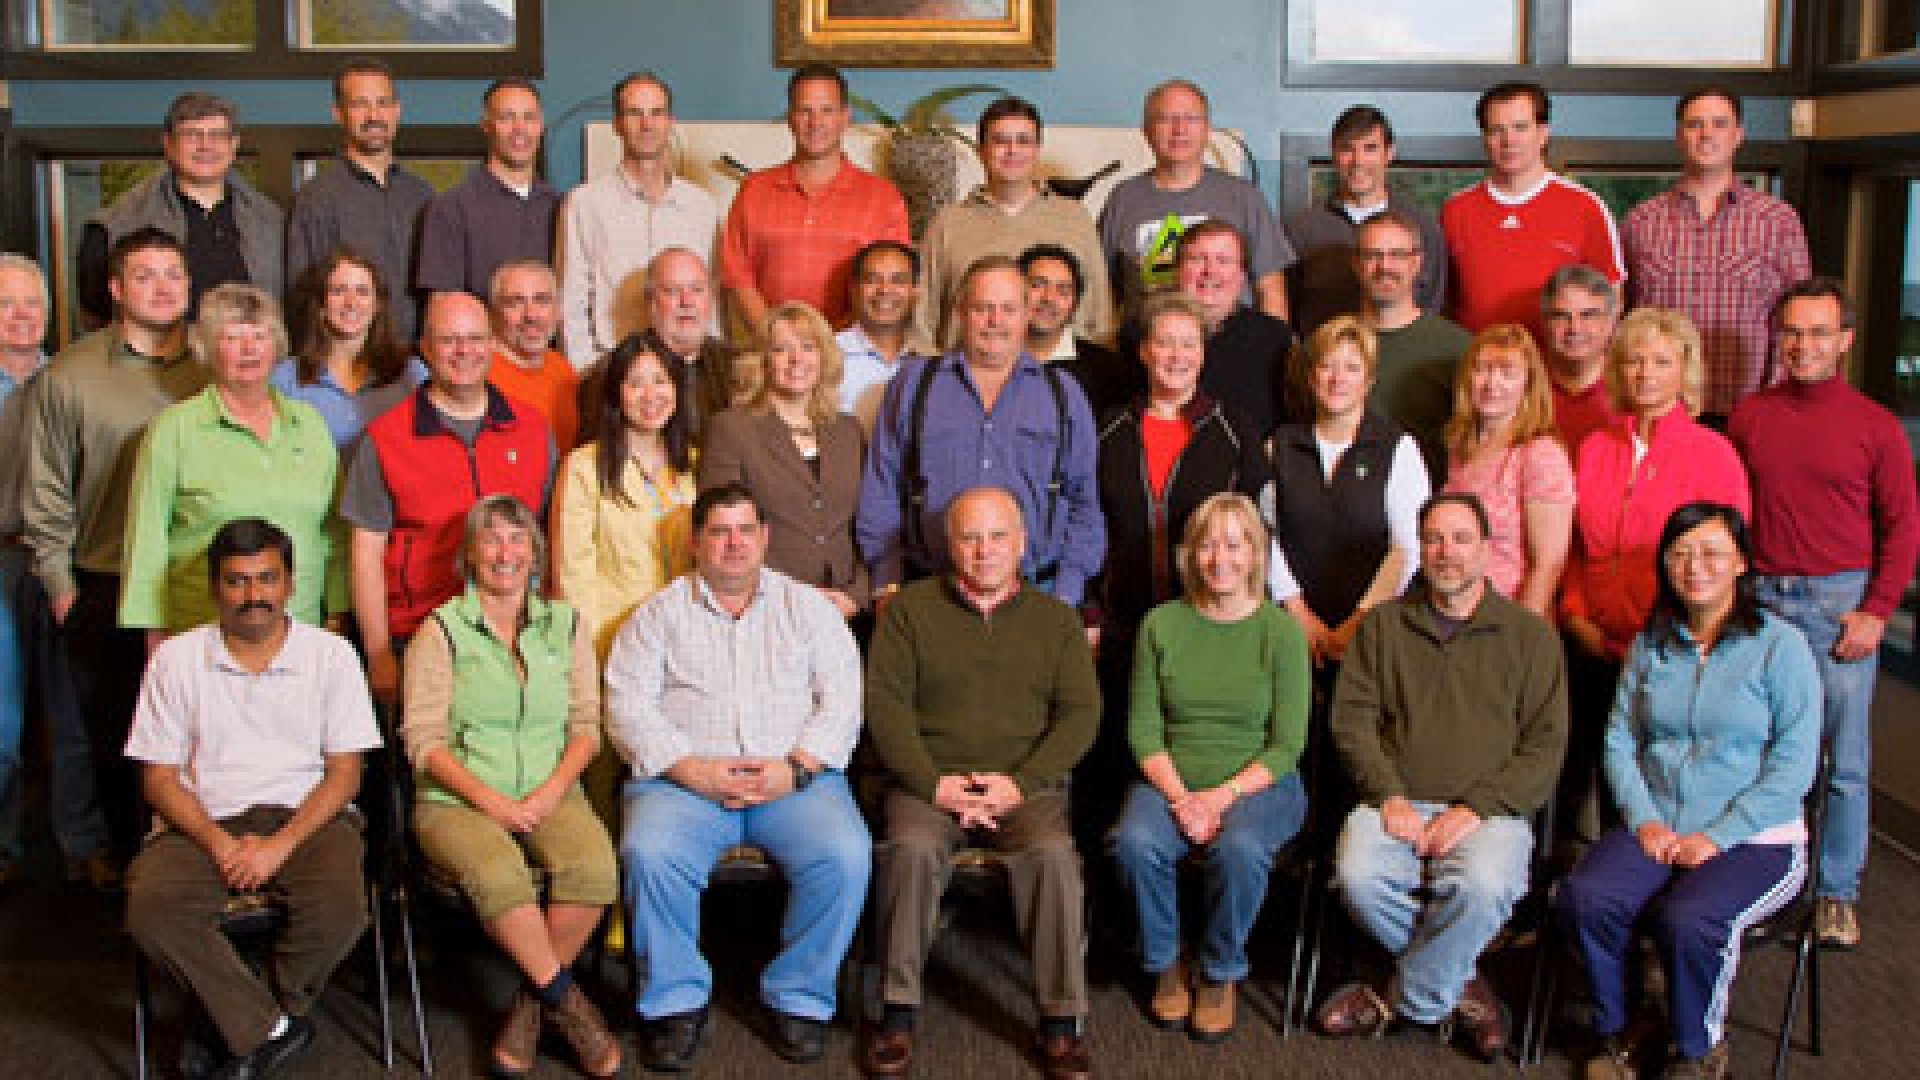 The n-Link company together at the Resort of the Mountain, in Mount Hood, Ore.